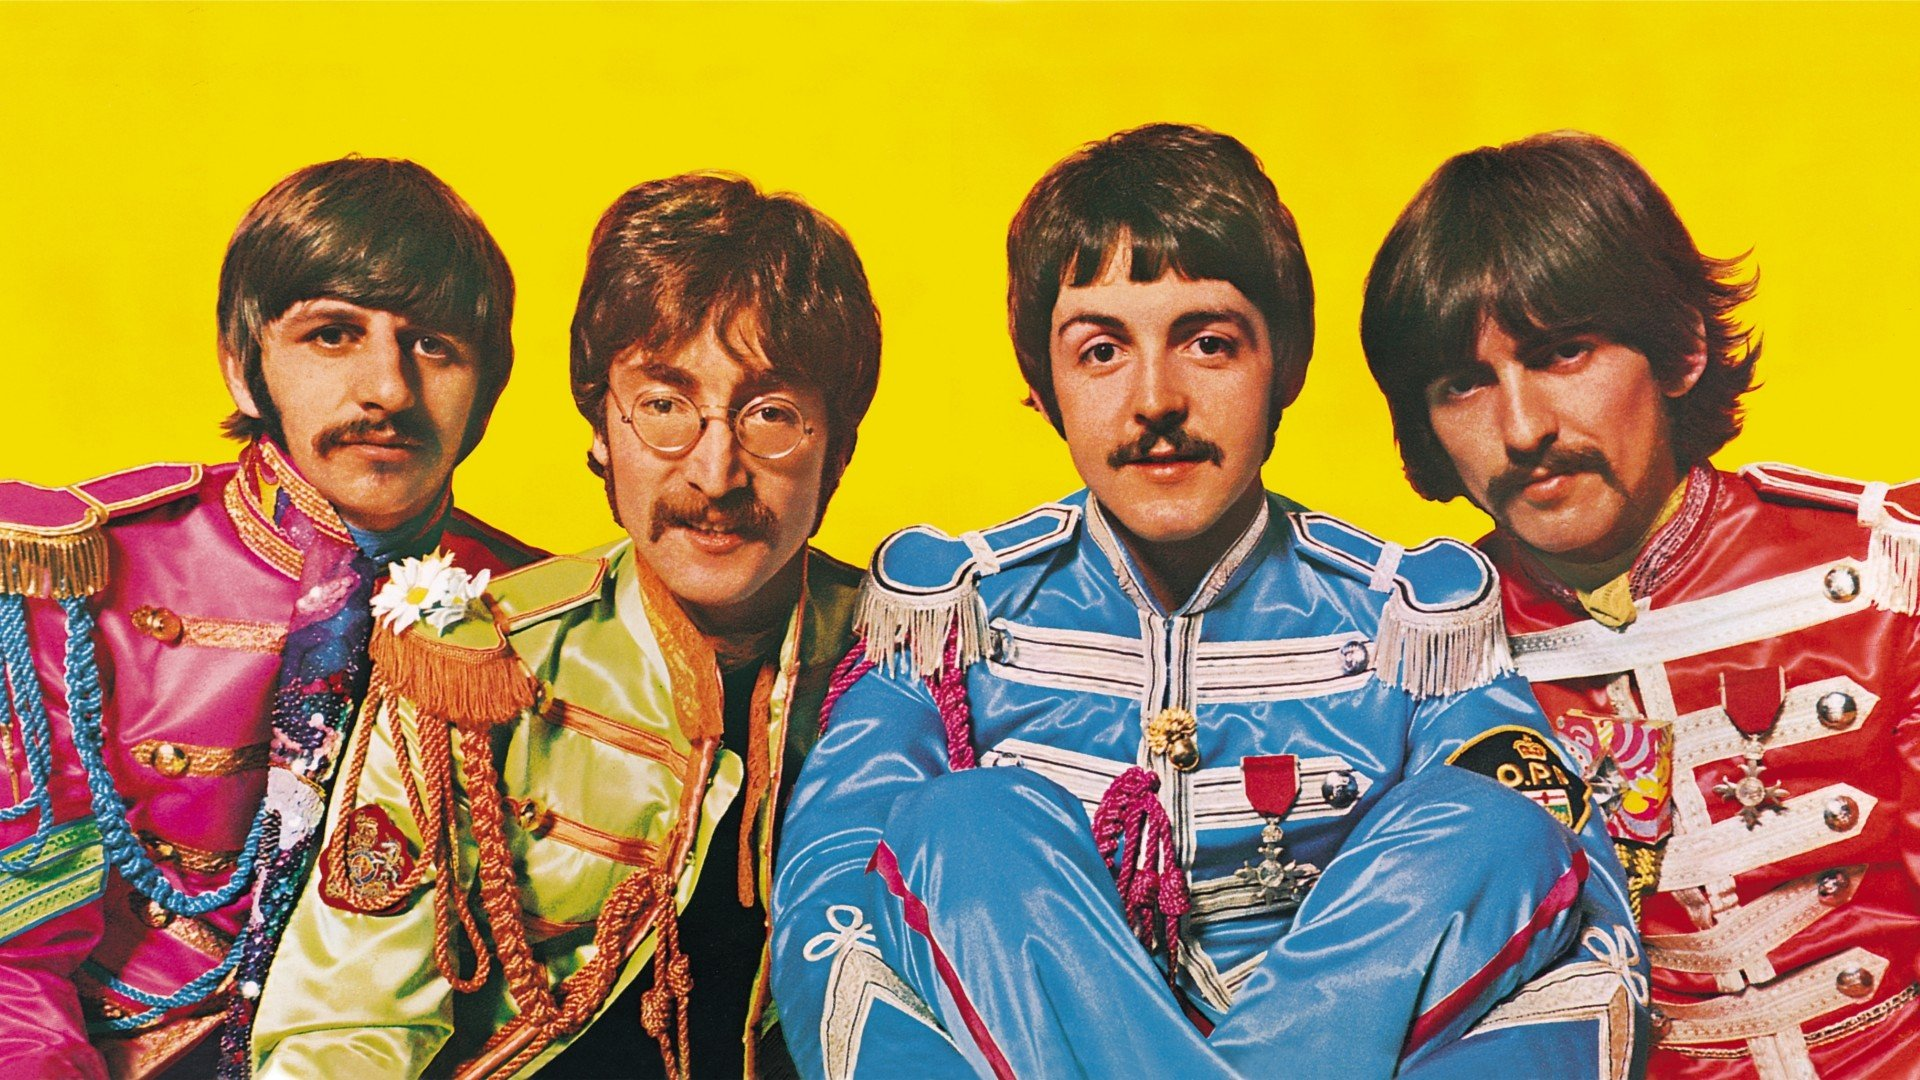 beatles_header.png